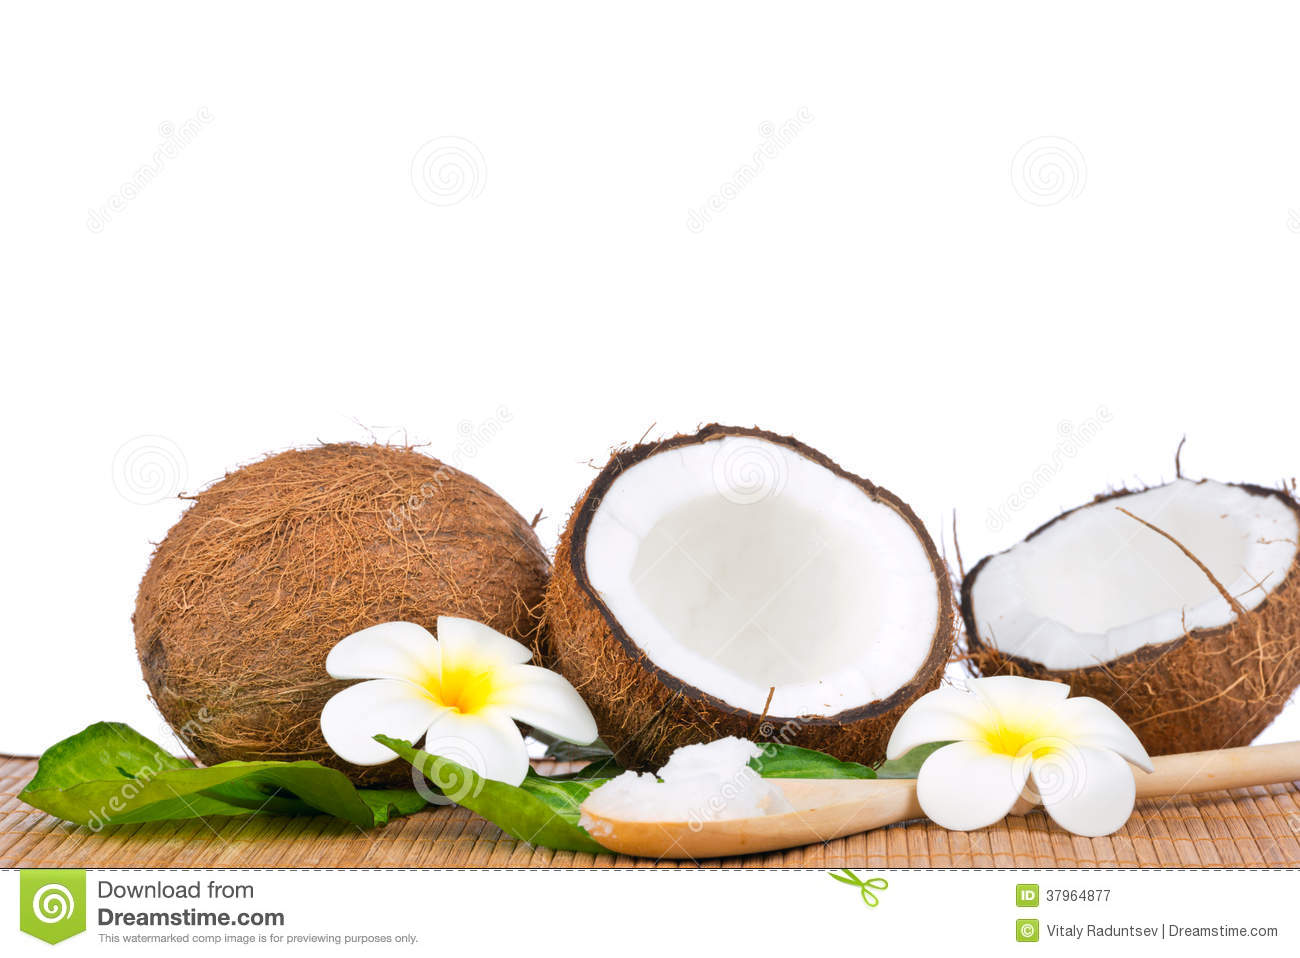 how to cut a green coconut